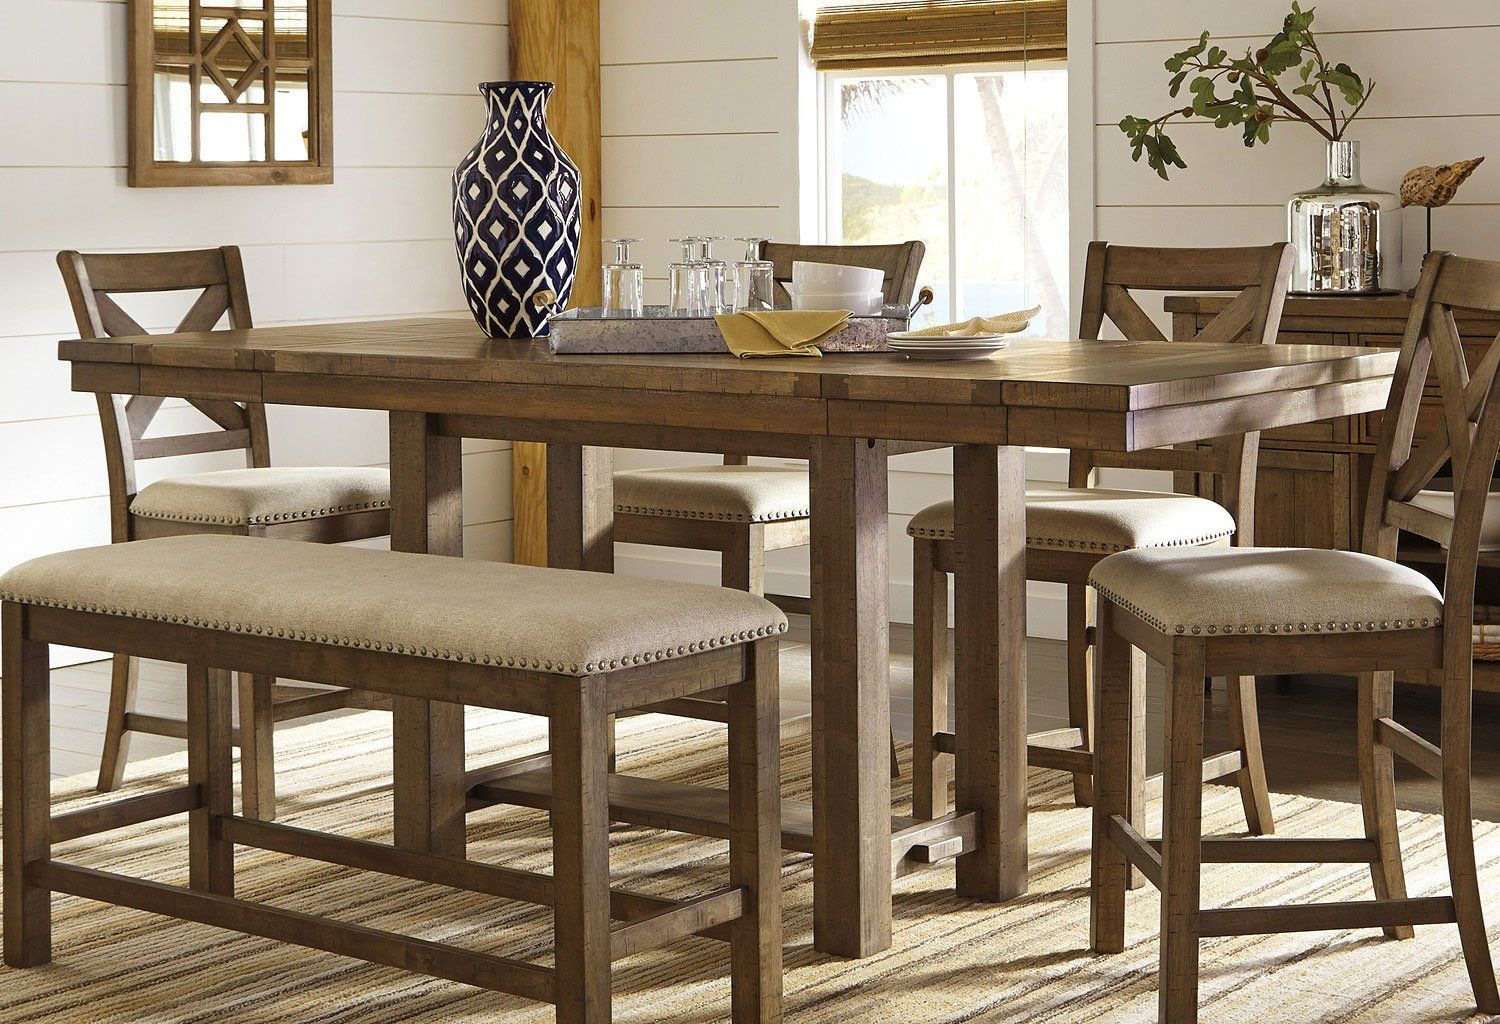 Moriville Counter Height Dining Table | Counter Height Within Most Current Dawid Counter Height Pedestal Dining Tables (View 5 of 15)